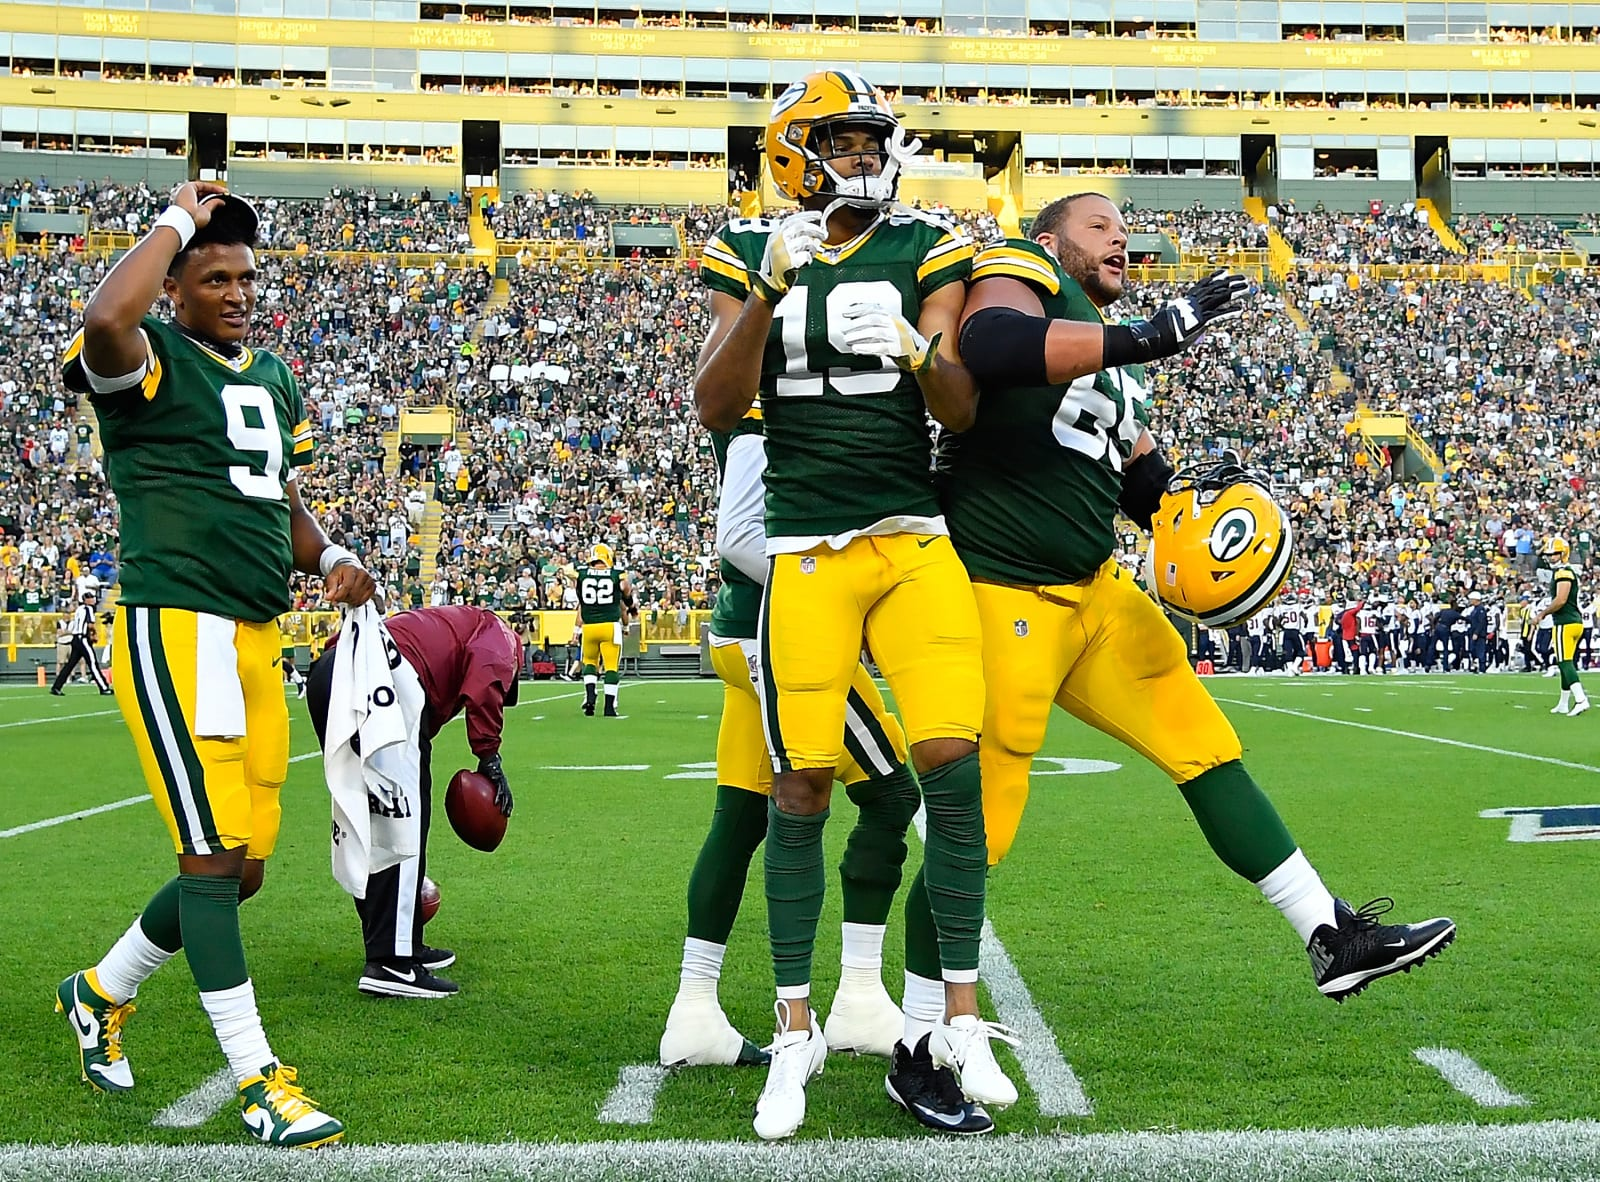 Green Bay Packers 5 Standouts From Preseason Week 1 Vs Texans